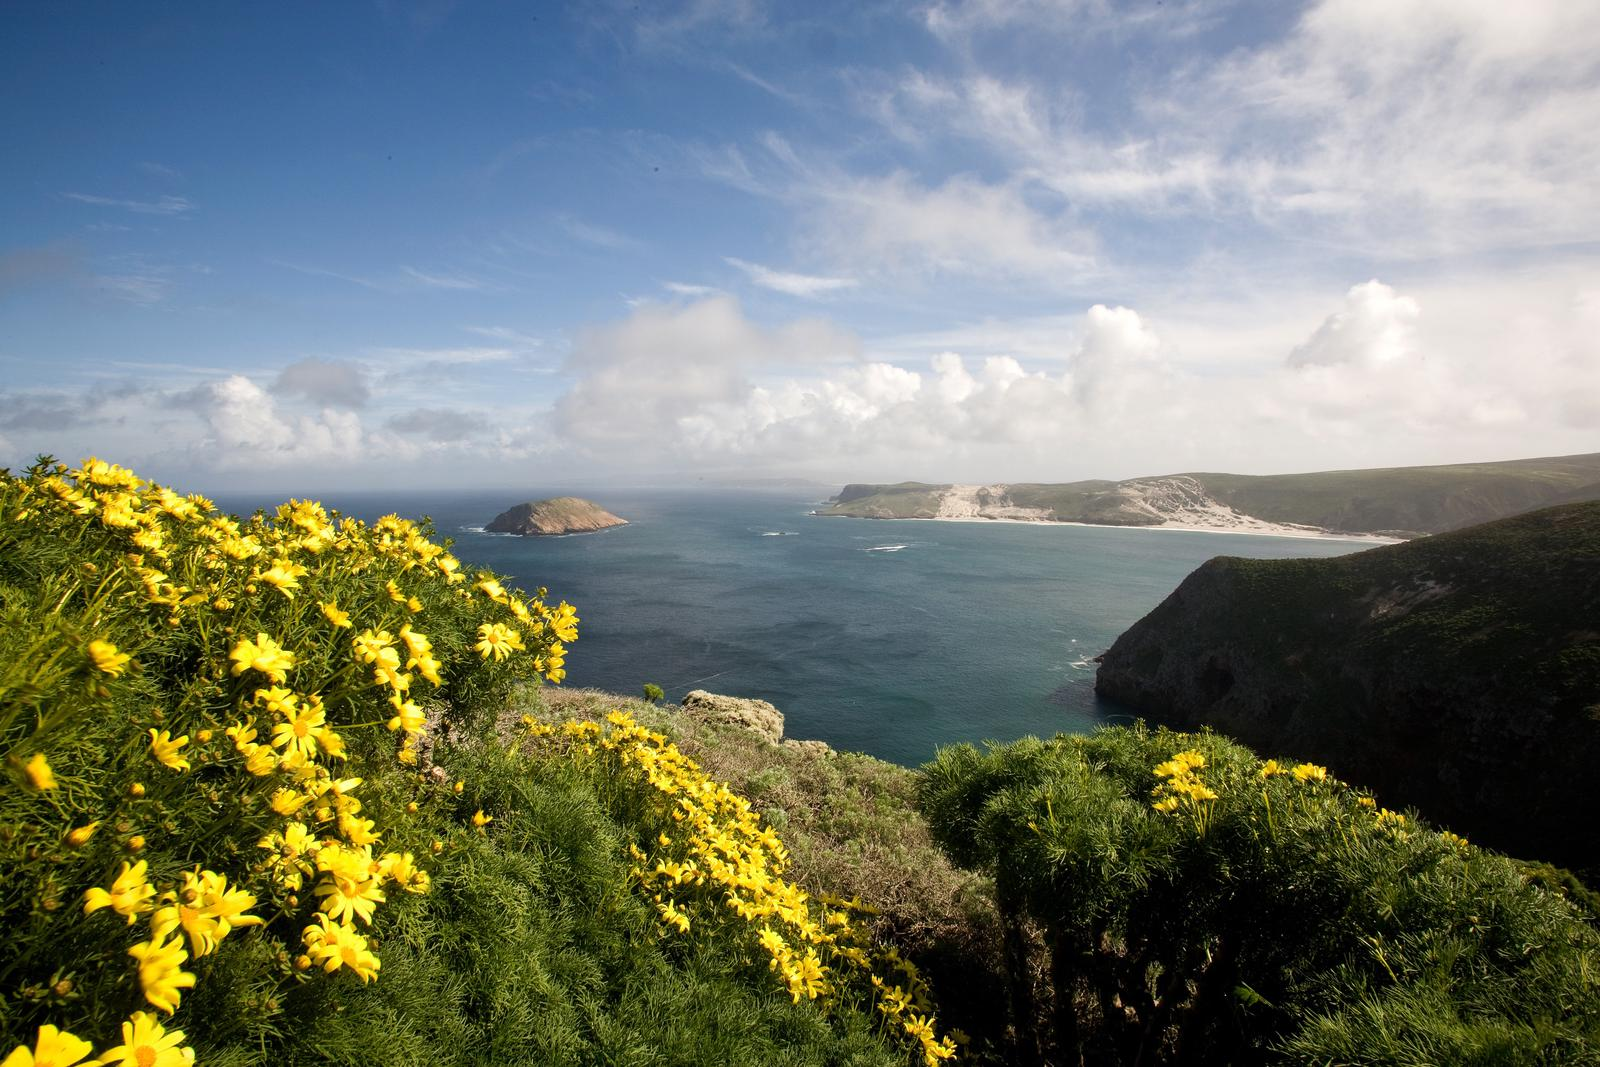 Yellow flowered plant on coastal bluff overlooking harbor with white sand and islet at the entrance.Cuyler Harbor, San Miguel Island